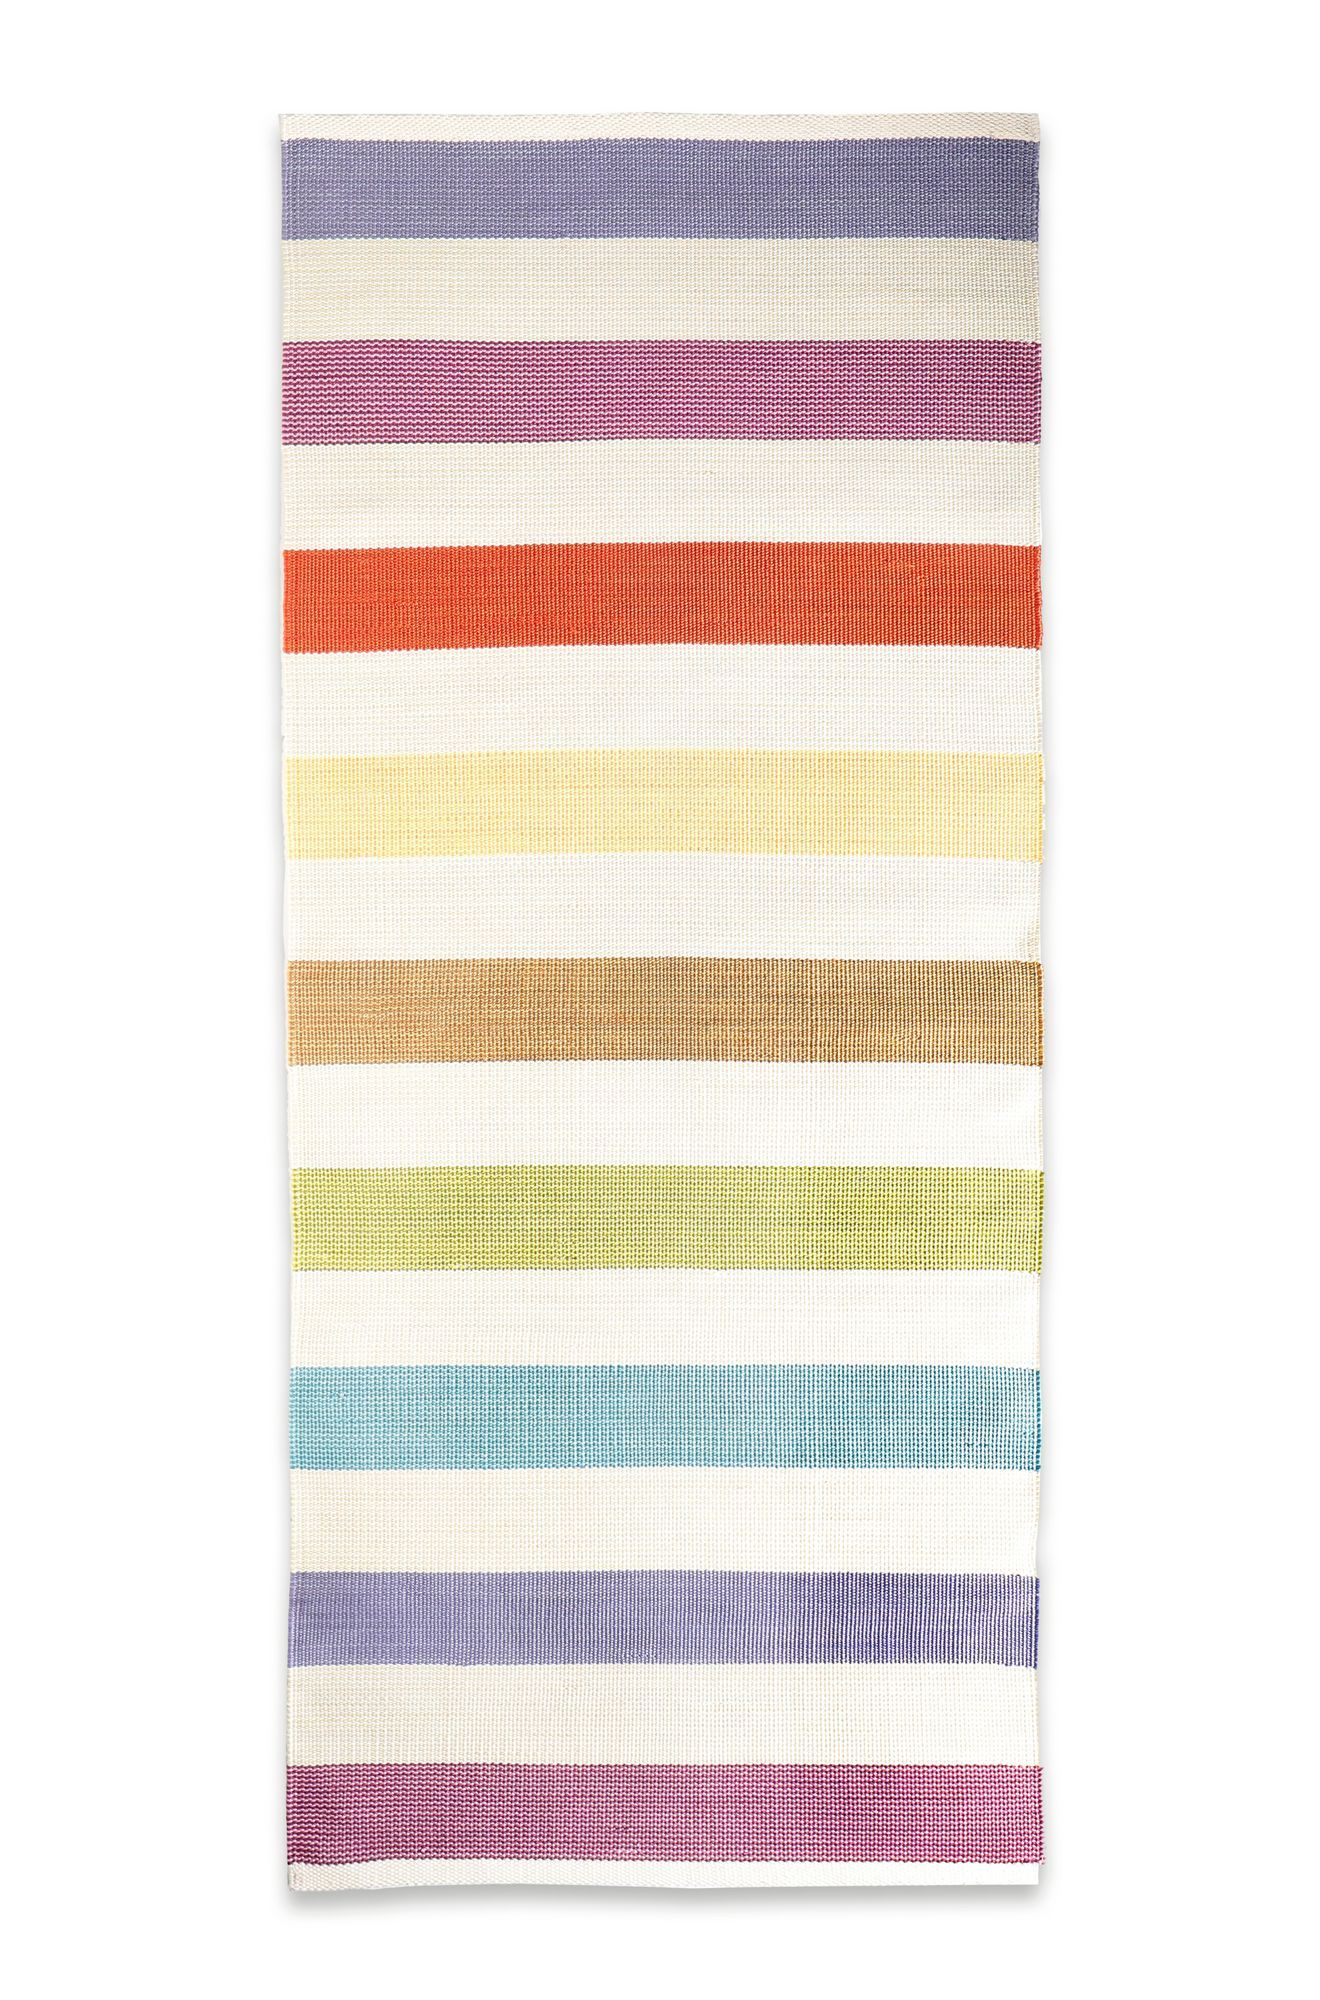 Shop Rugs In The Missoni Online Store Secure Payments And Worldwide Delivery Missoni Rugs Rug Shopping